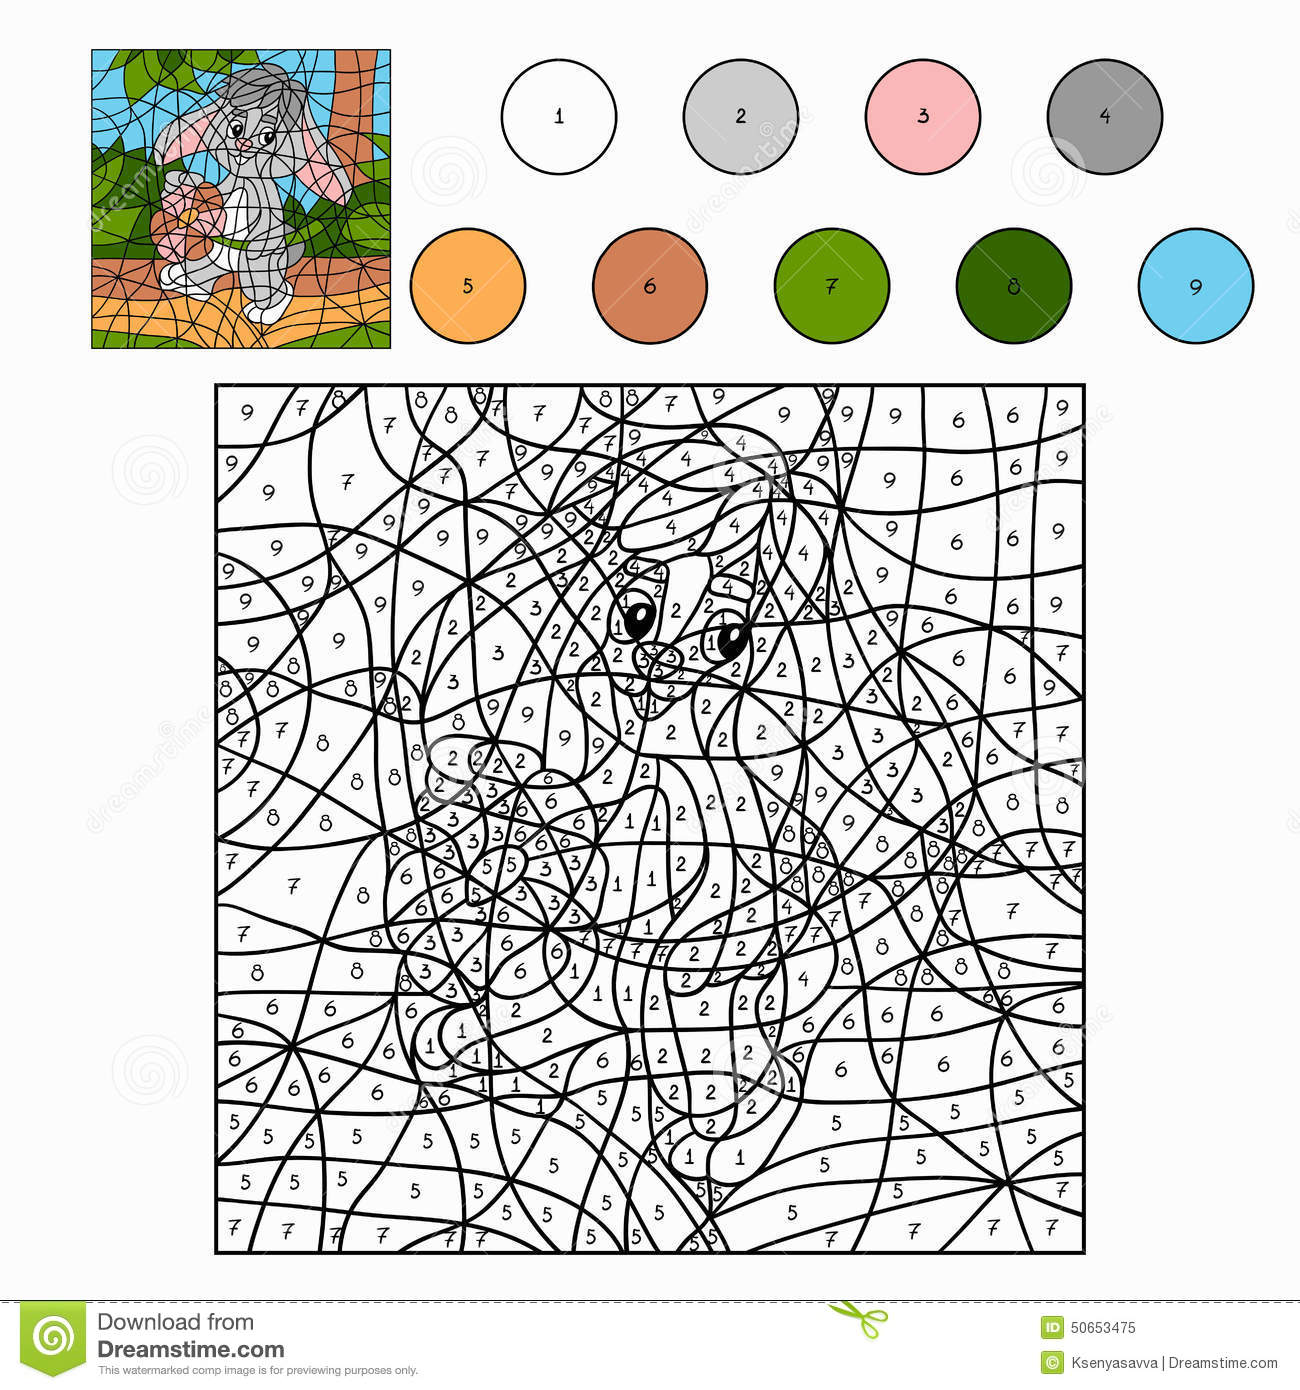 Coloring by numbers for rabbits - Color By Number Rabbit Royalty Free Stock Photo